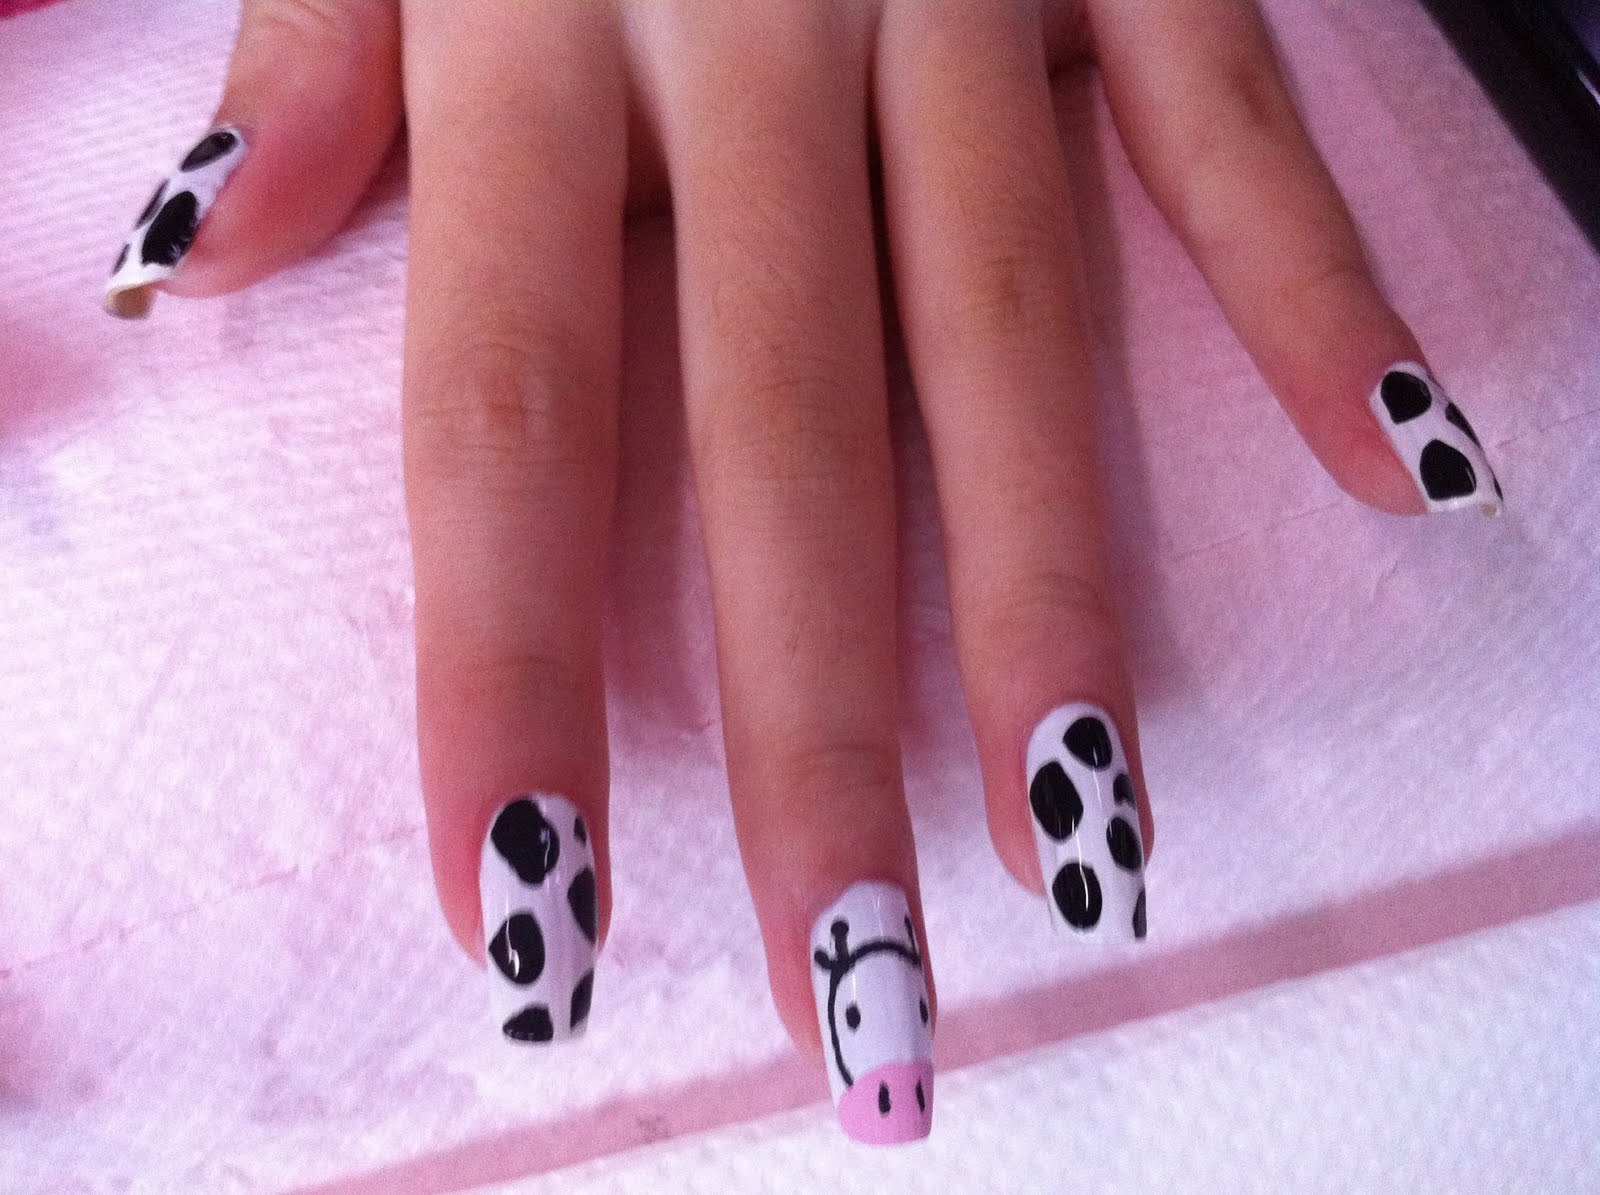 14 Nail Designs With White Base Images